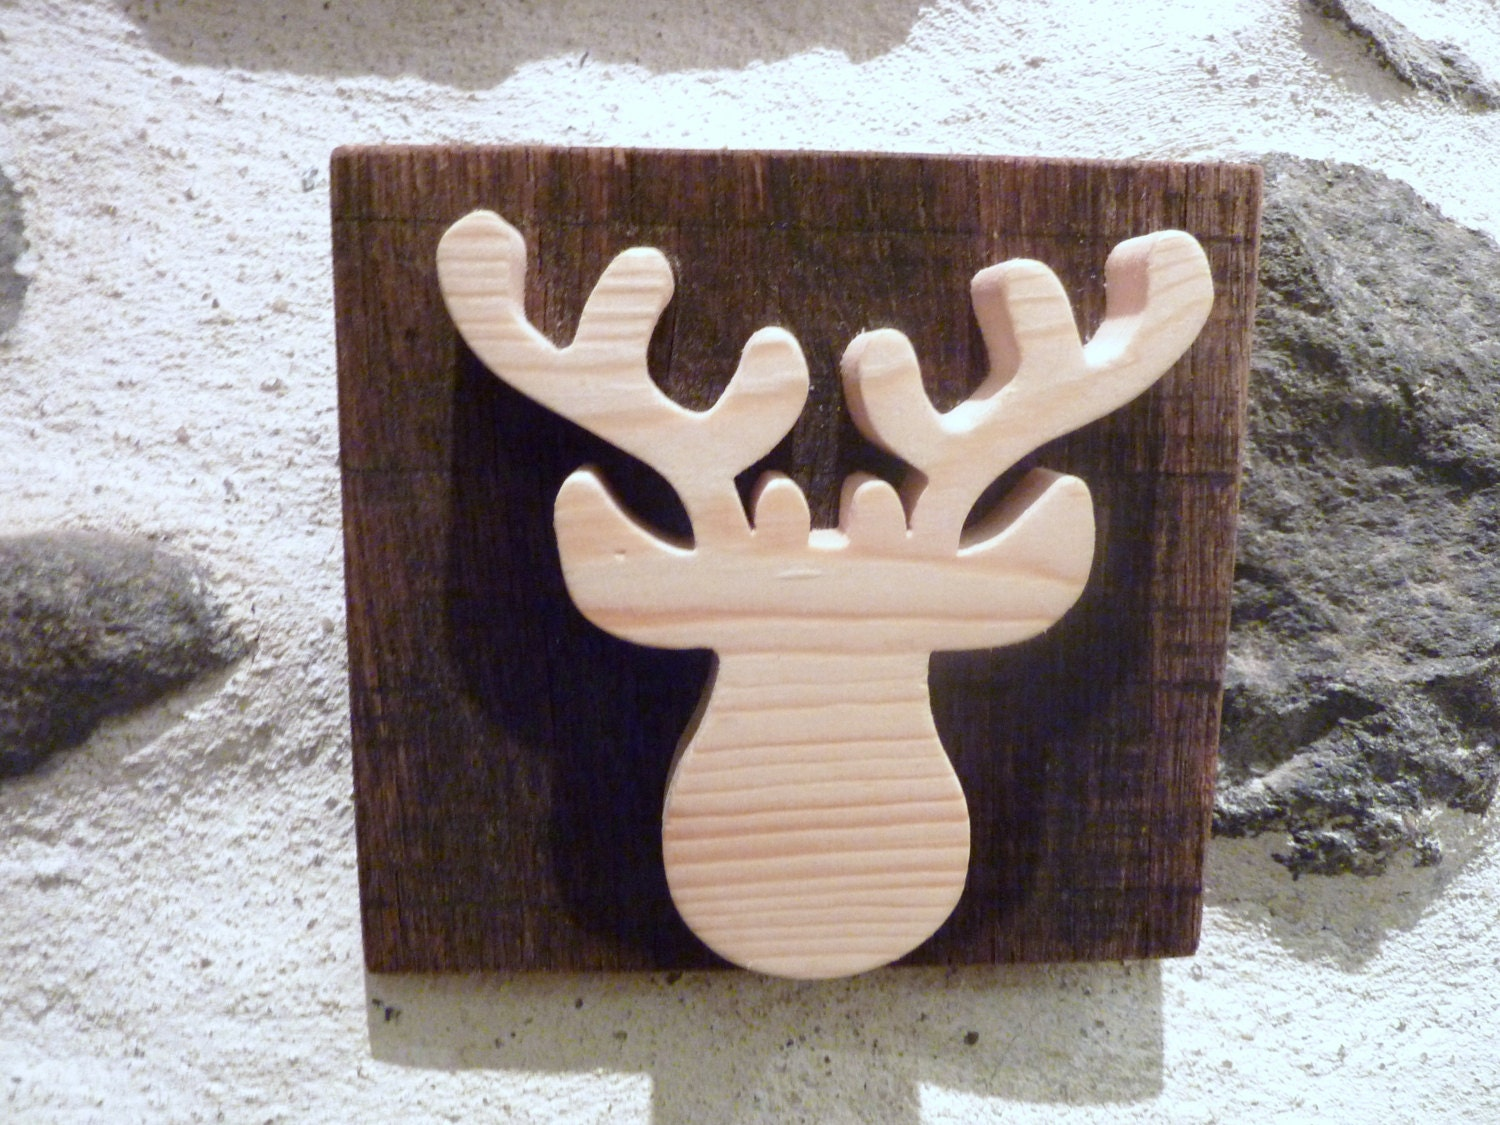 reindeer decor wooden reindeer wall sign head of reindeer. Black Bedroom Furniture Sets. Home Design Ideas